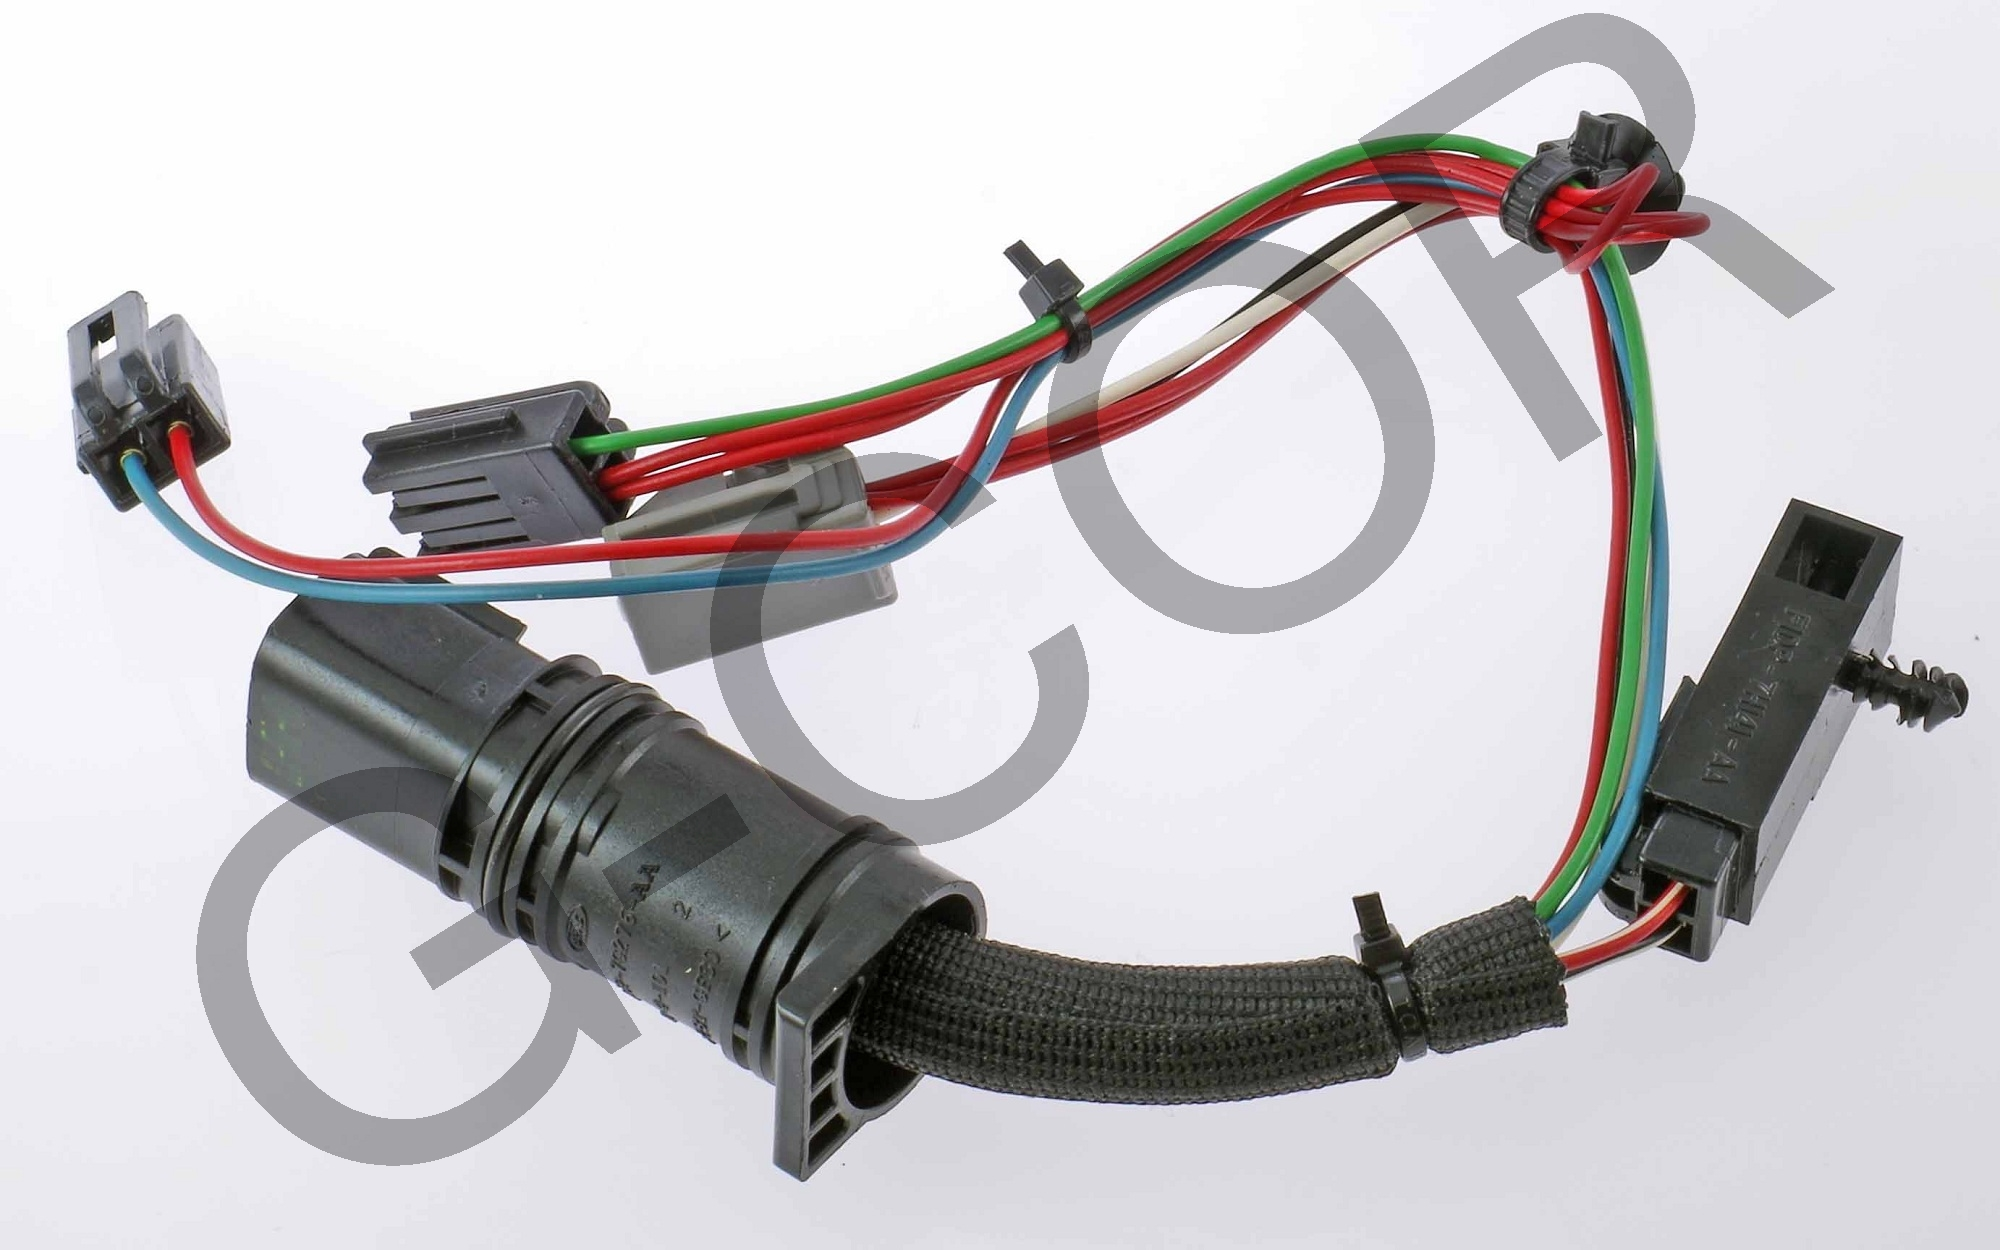 hight resolution of  1987 chevy 350 tbi wiring 4r70w e 4r75w e wire harness soft wire d76986c g cor automotive